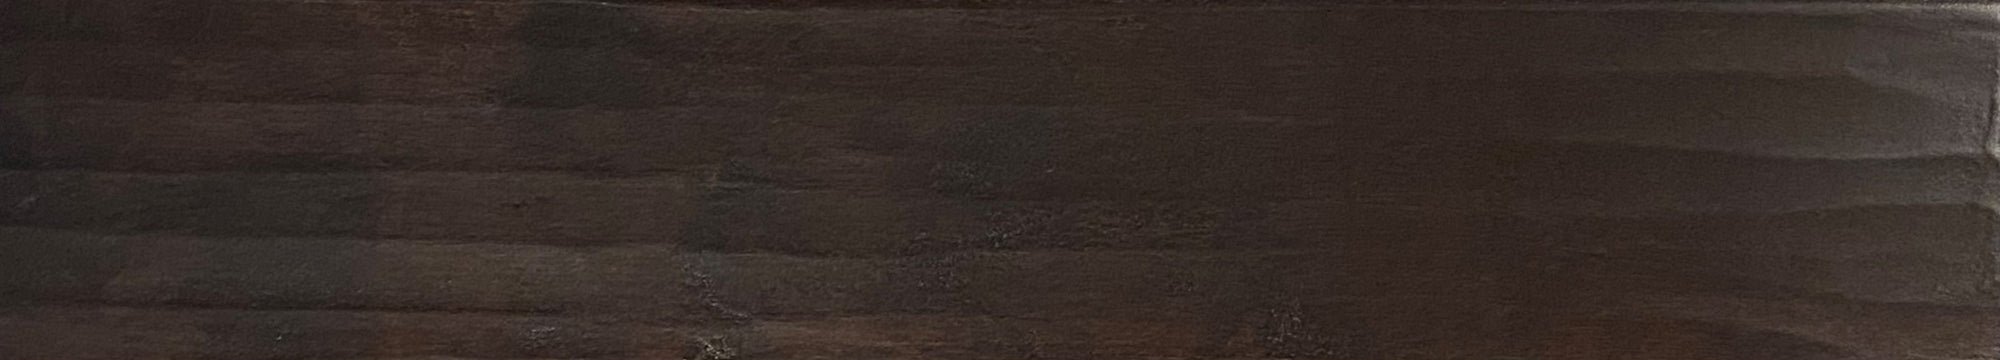 "5"" x 9/16"" Urban Flooring Hickory Sunset- Edmonton Outlet"